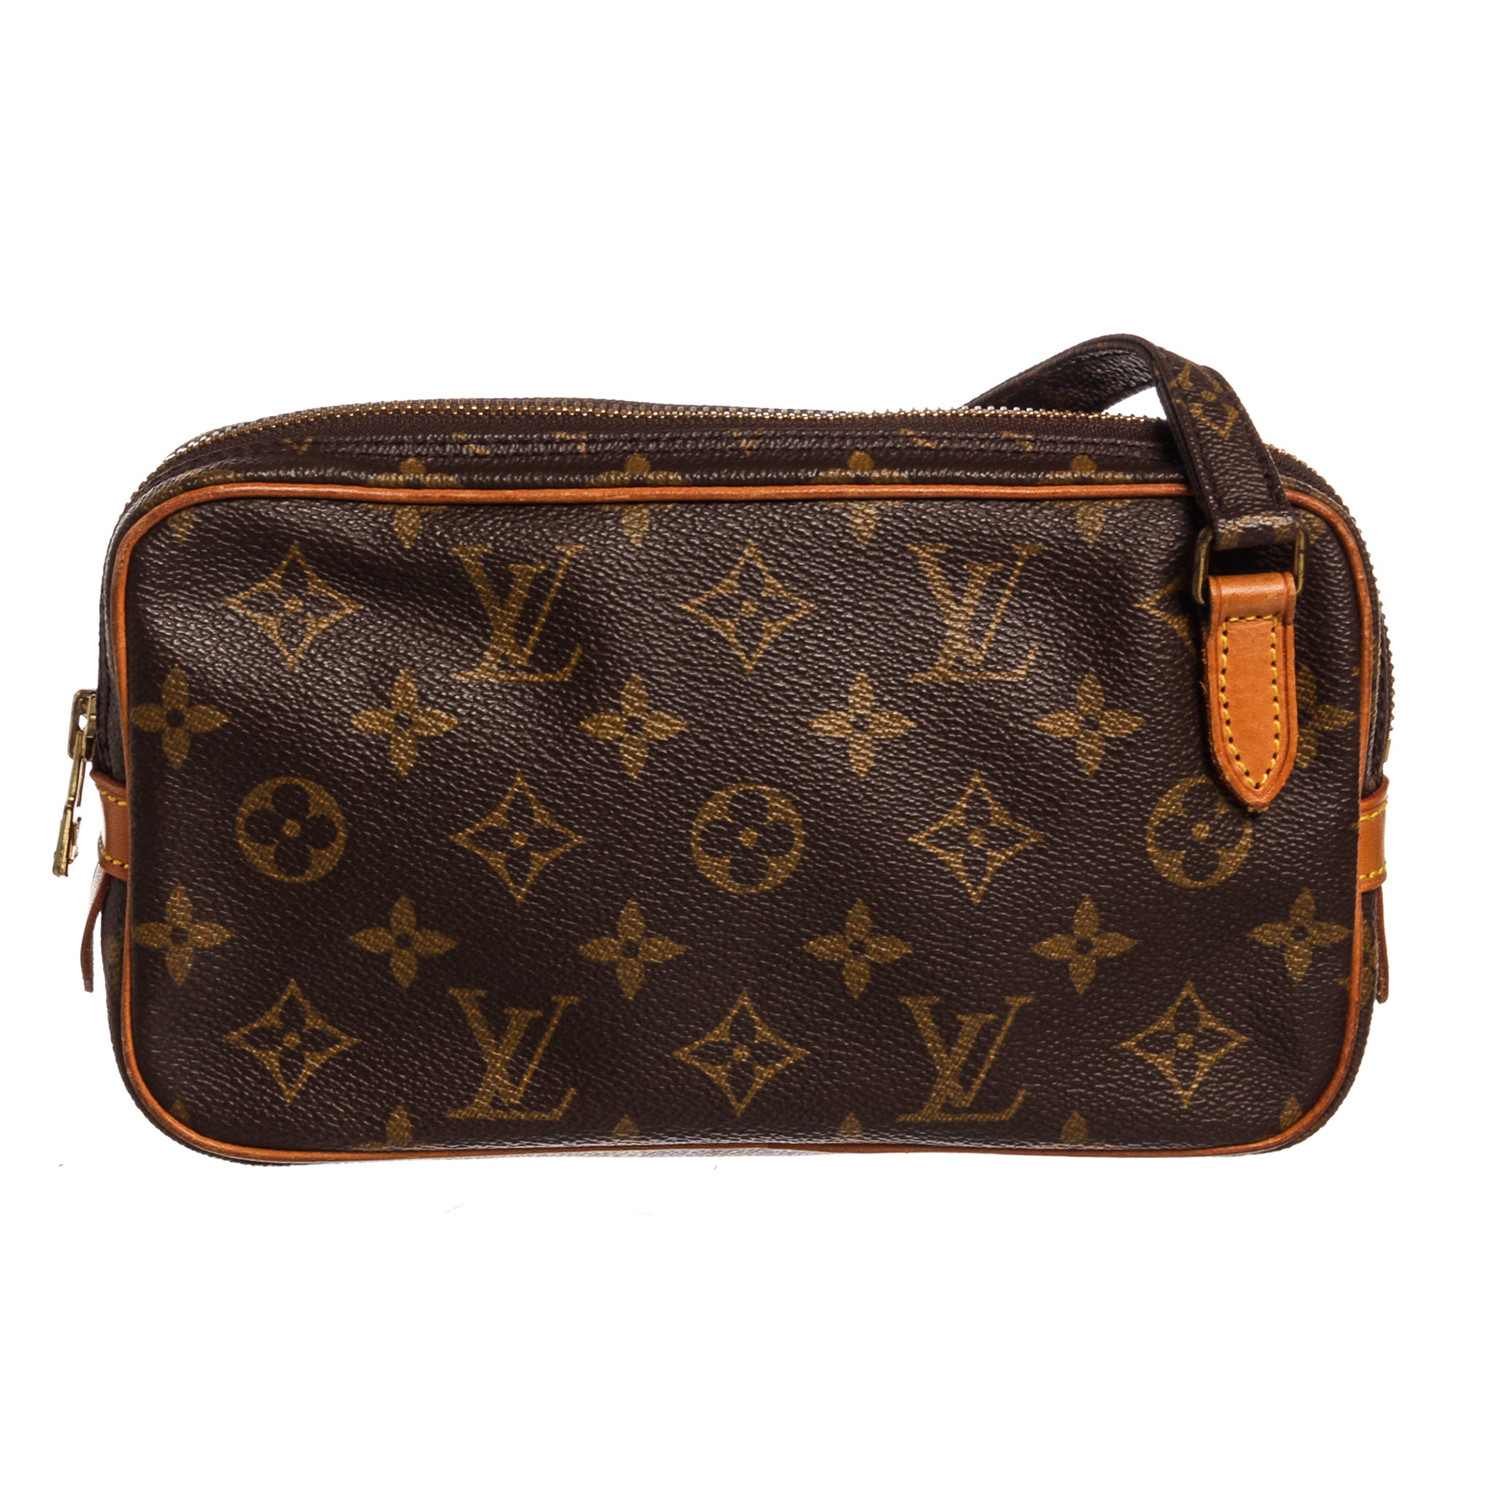 f82d9988489d Canvas Leather Monogram Marly Side Bag    Pre-Owned    TH0920 - Pre ...